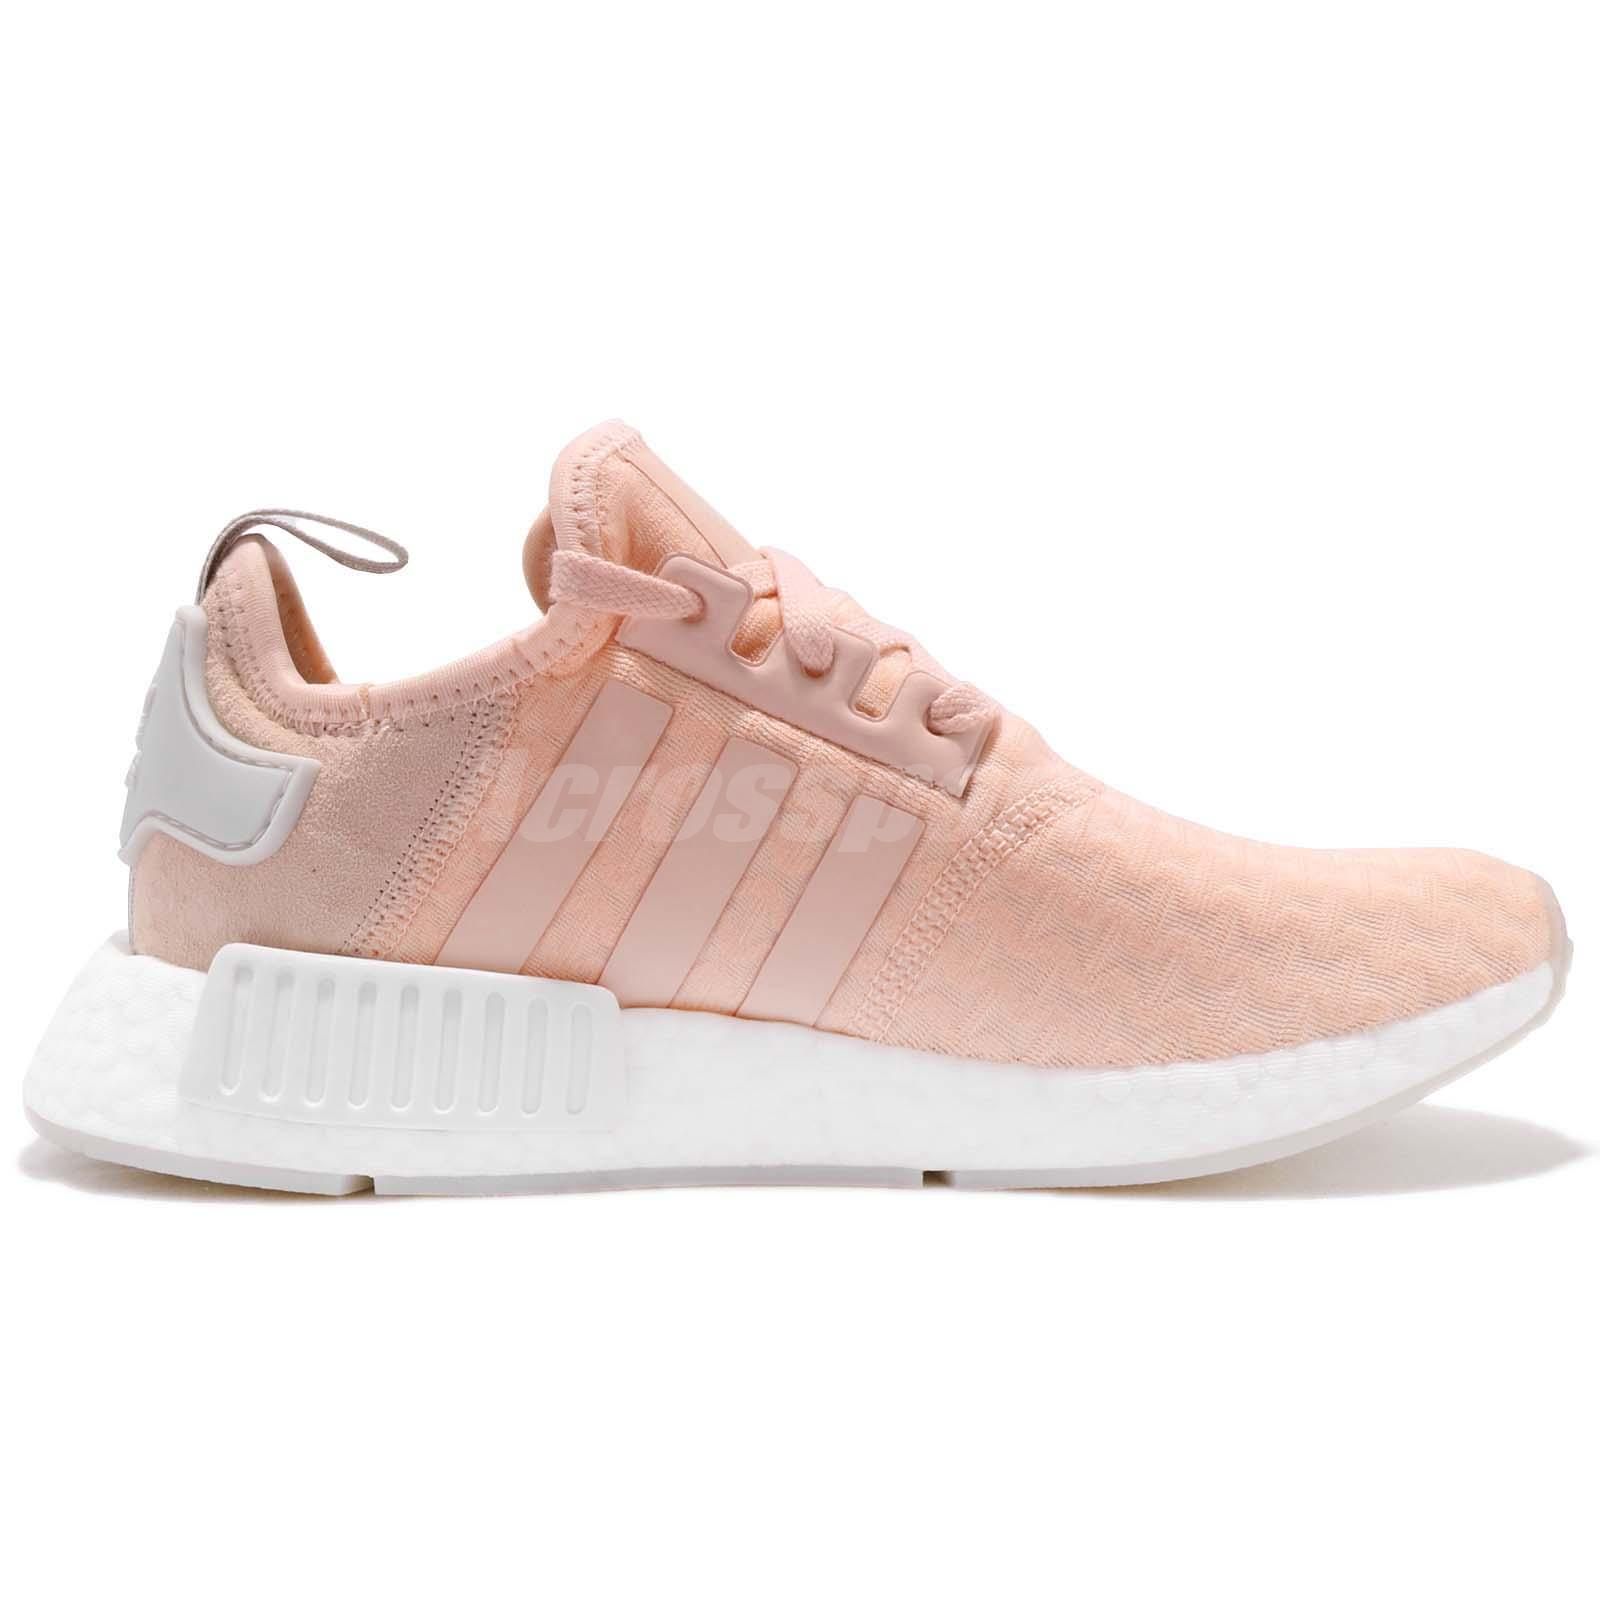 99cd6589f adidas Originals NMD R1 W Boost Pink White Women Shoes Sneakers ...